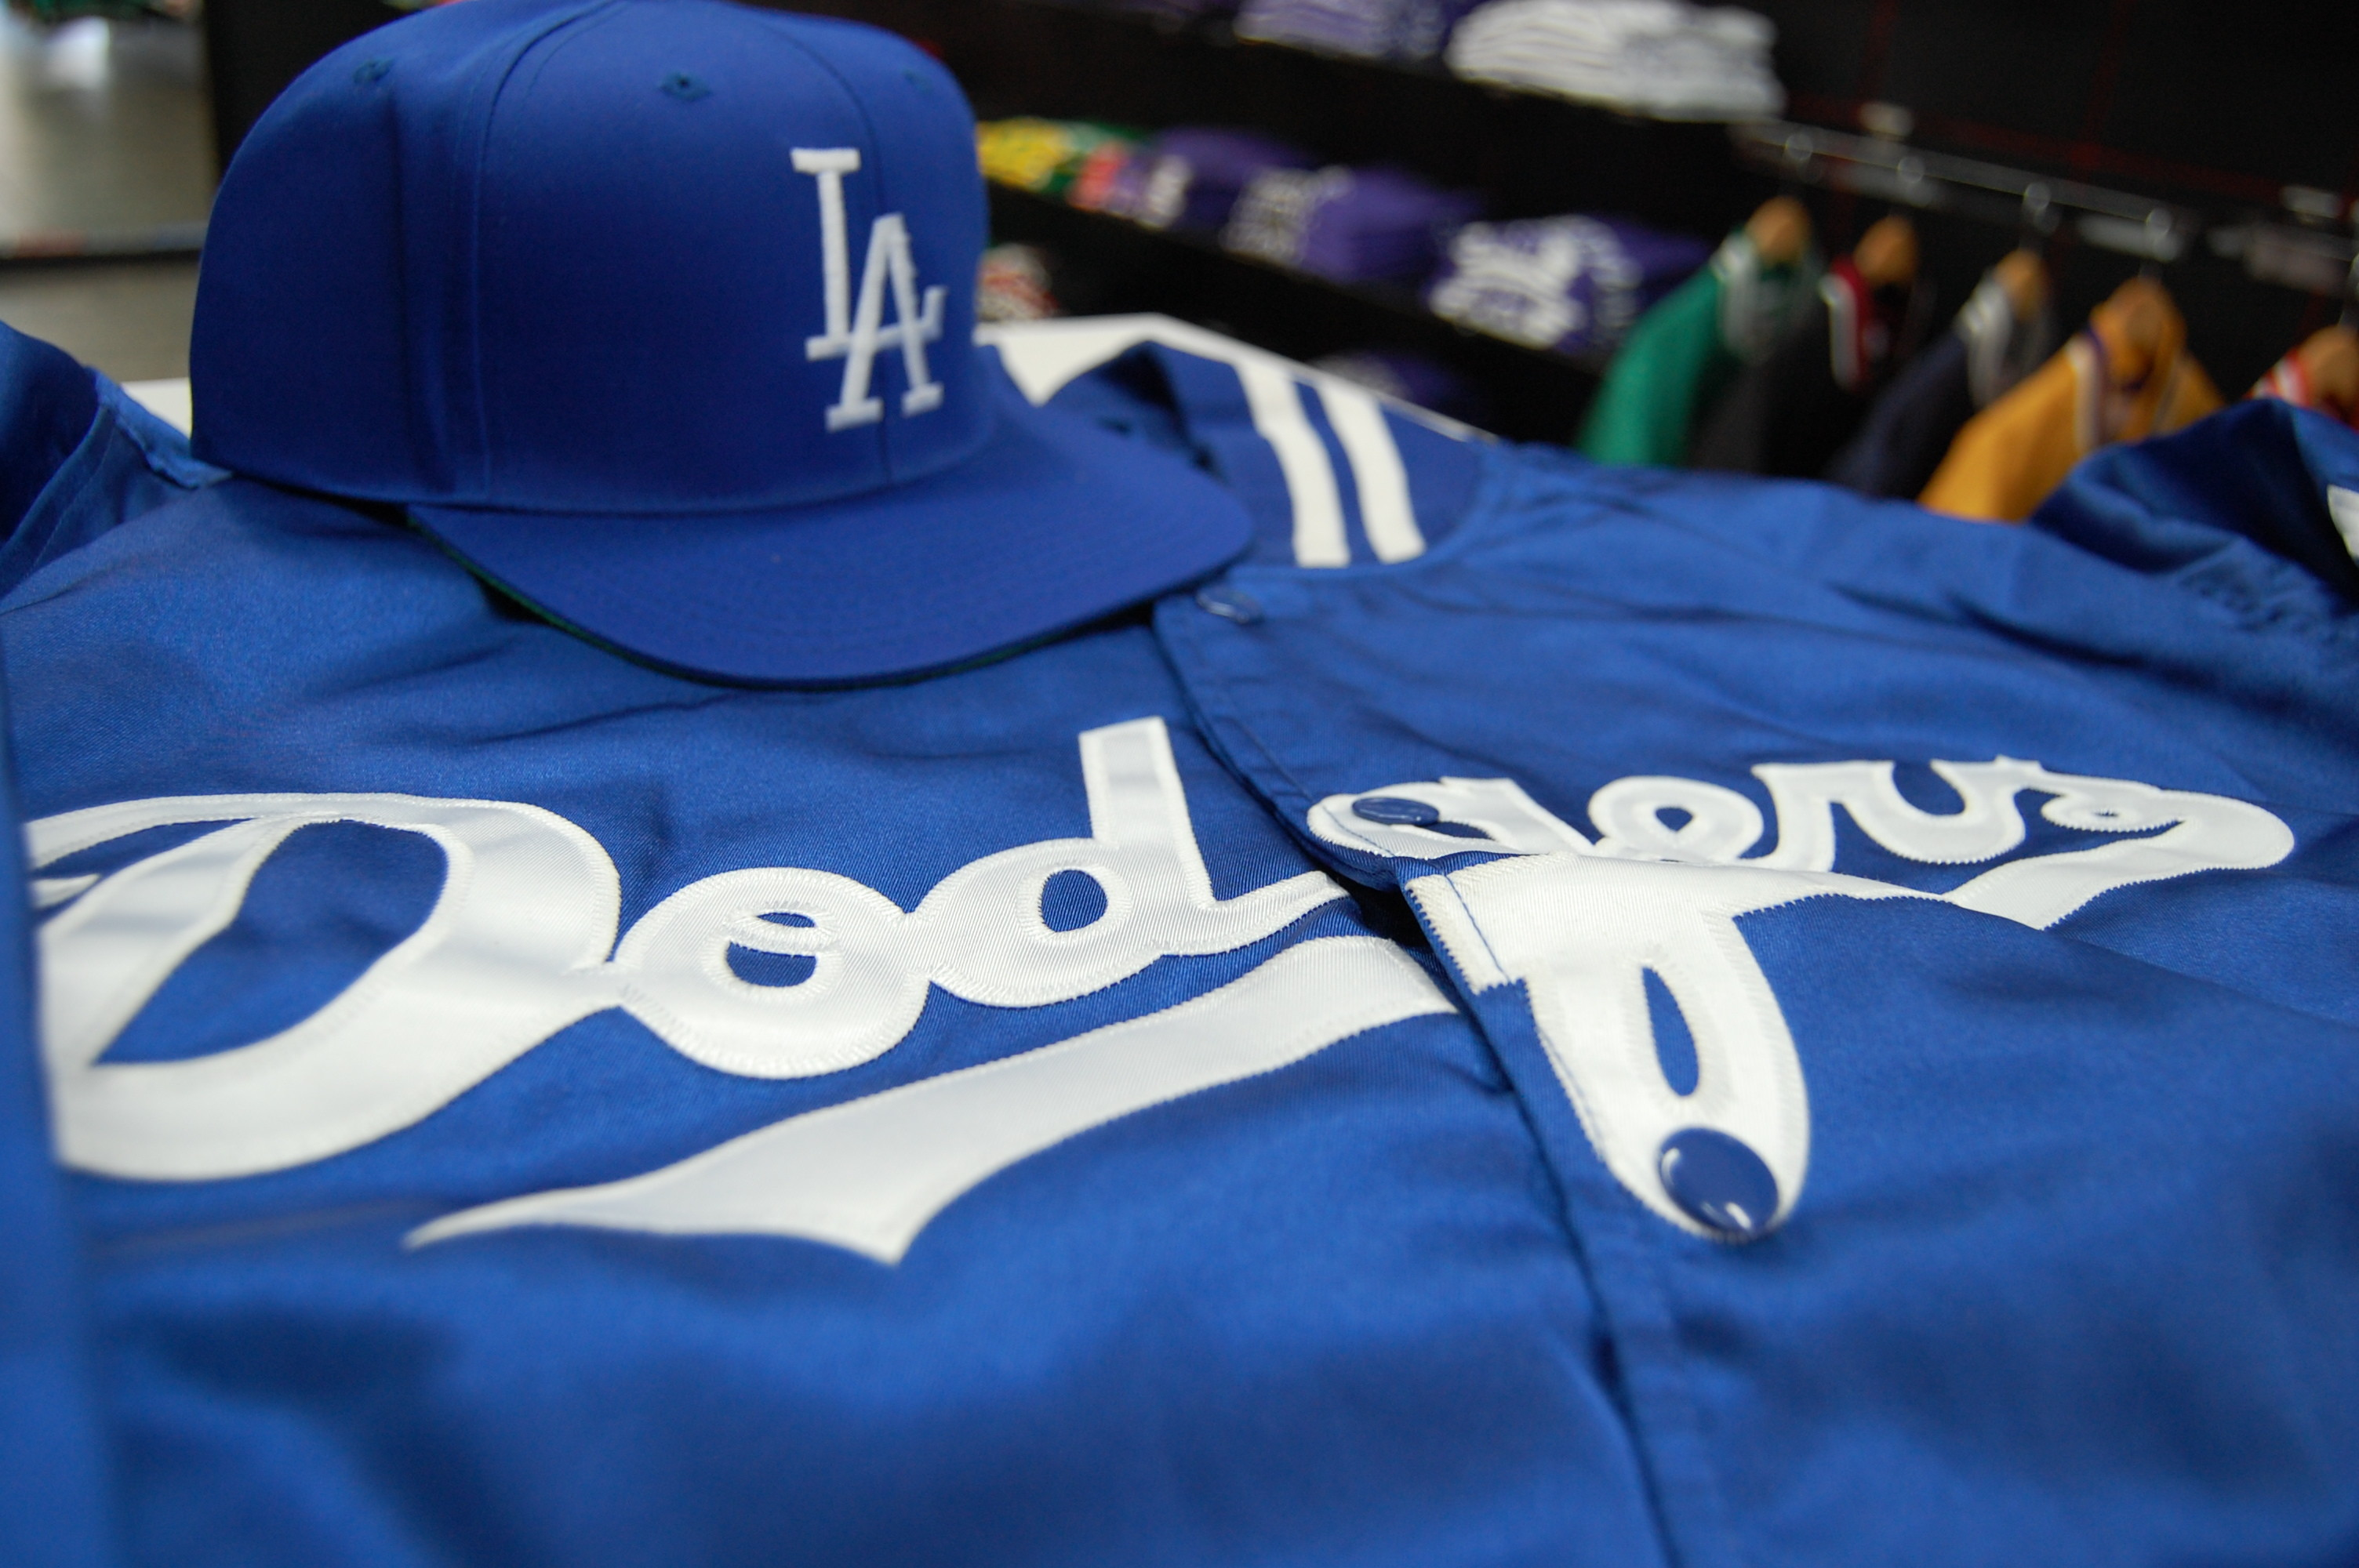 1000+ images about LO$ ANG3L3$ DODG3R$ on Pinterest | Dodger stadium, ESPN  and Los angeles